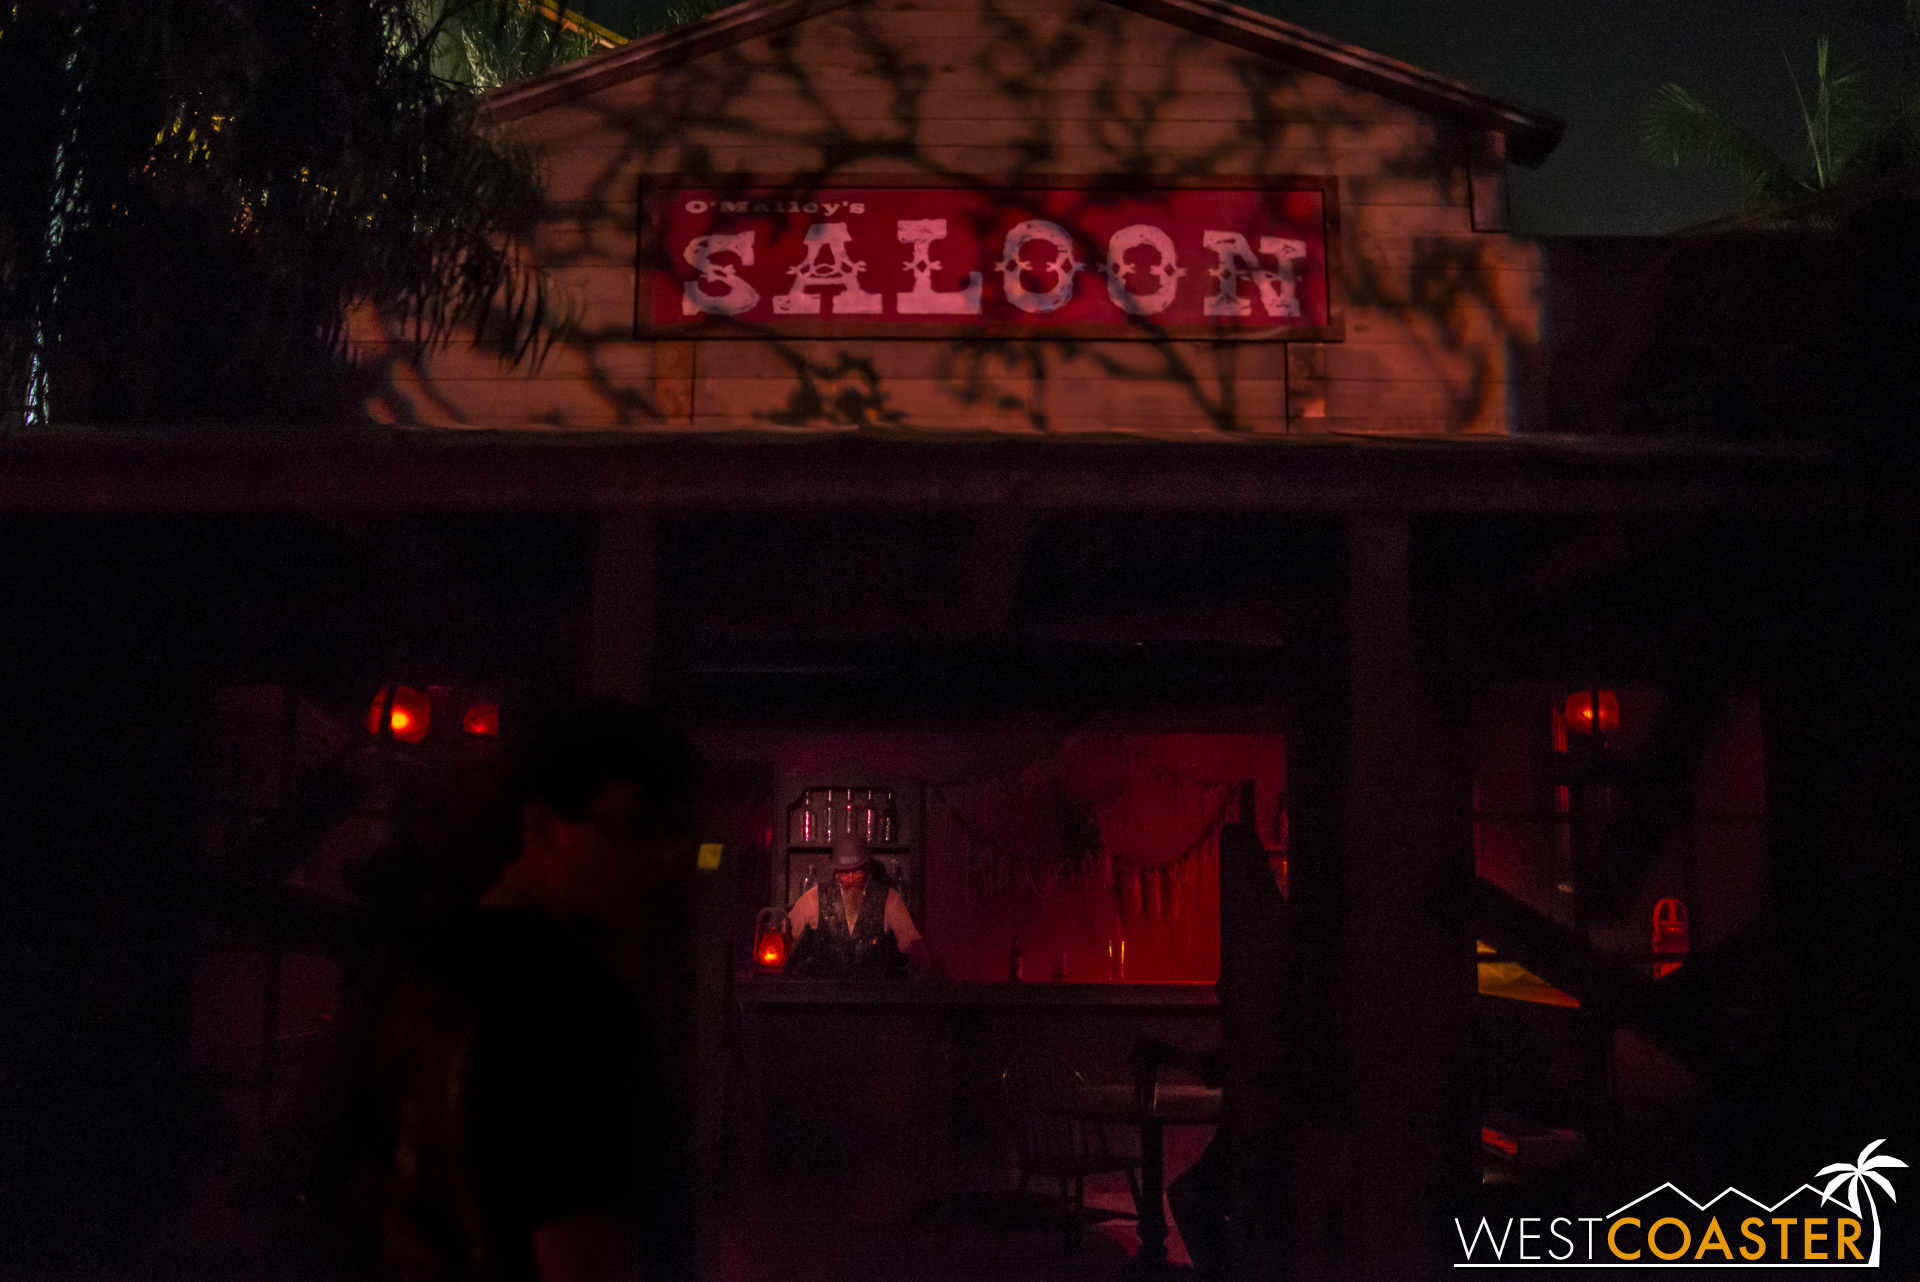 The lairs are dark and hard to photograph, so we skip over to the saloon.